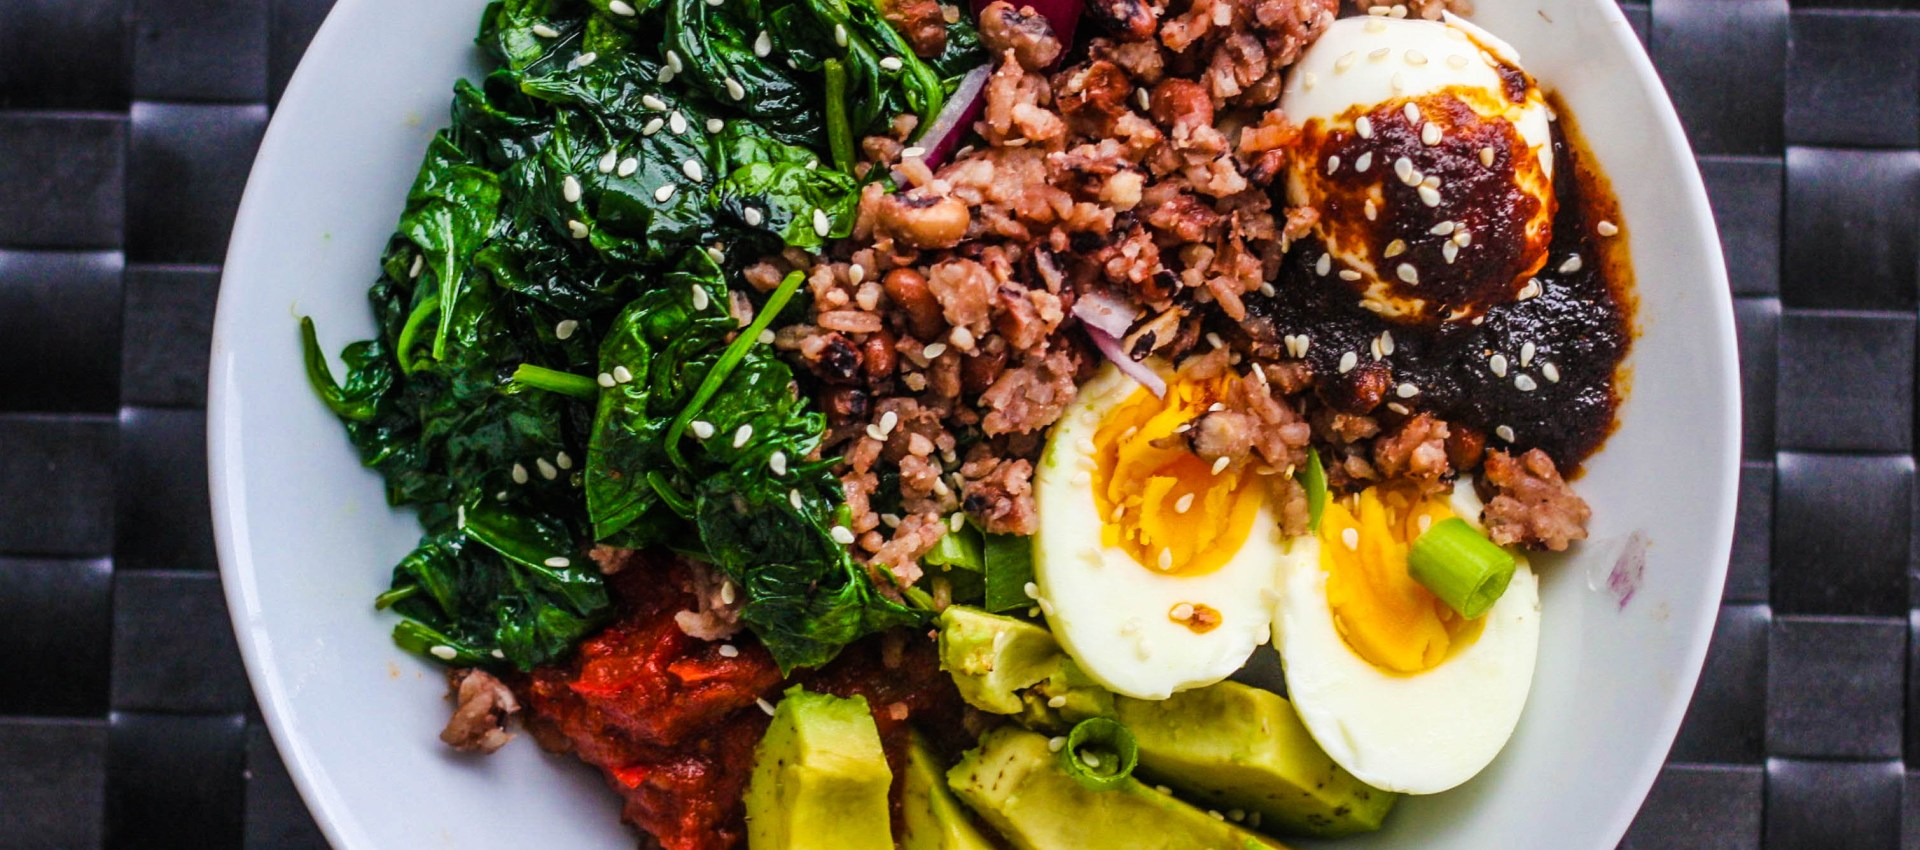 Birthing Waakye and sautéed spinach on Mothers' day